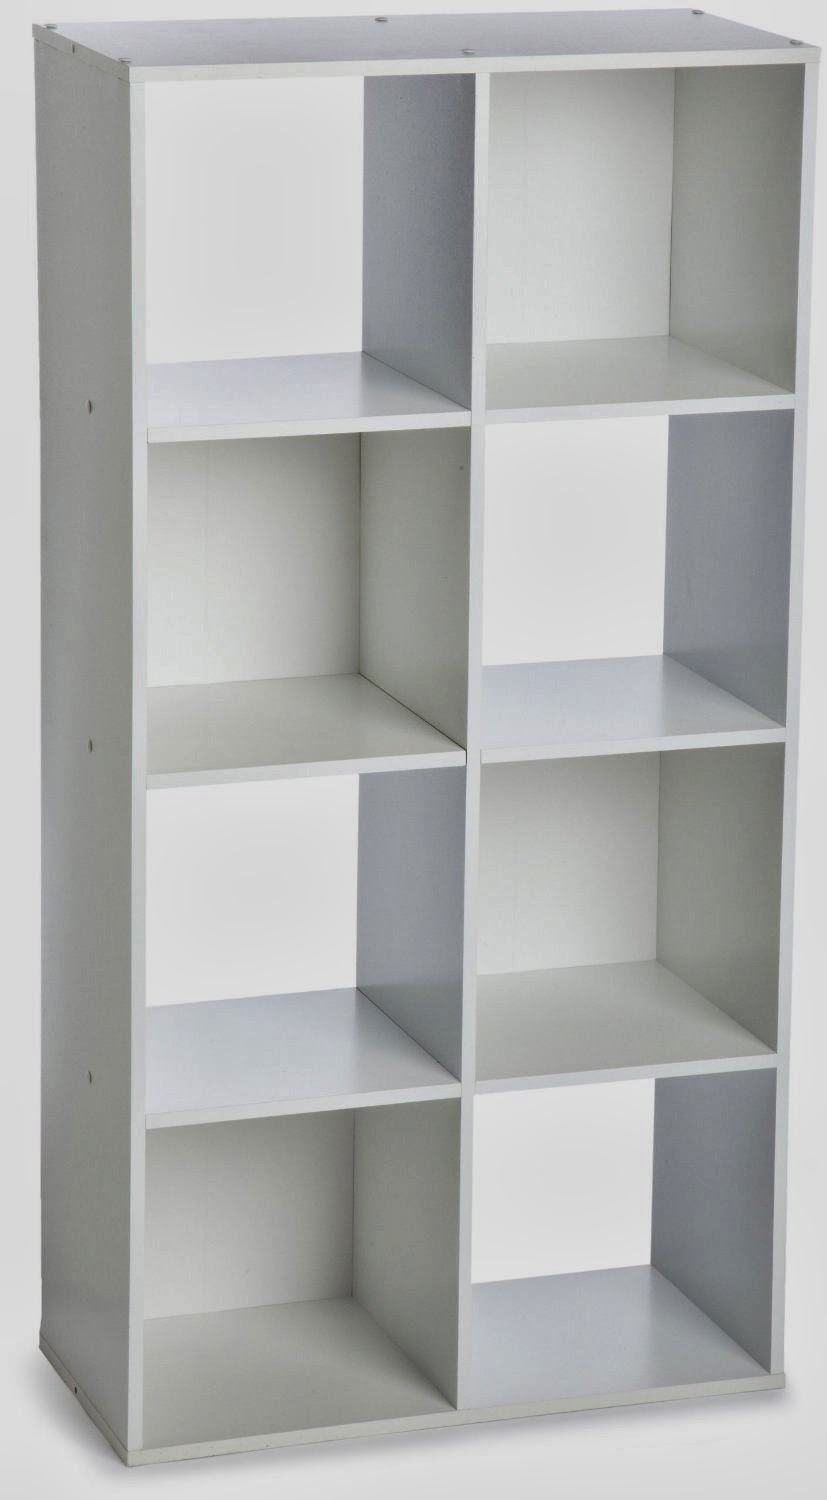 Closetmaid Closetmaid Cube Organizer